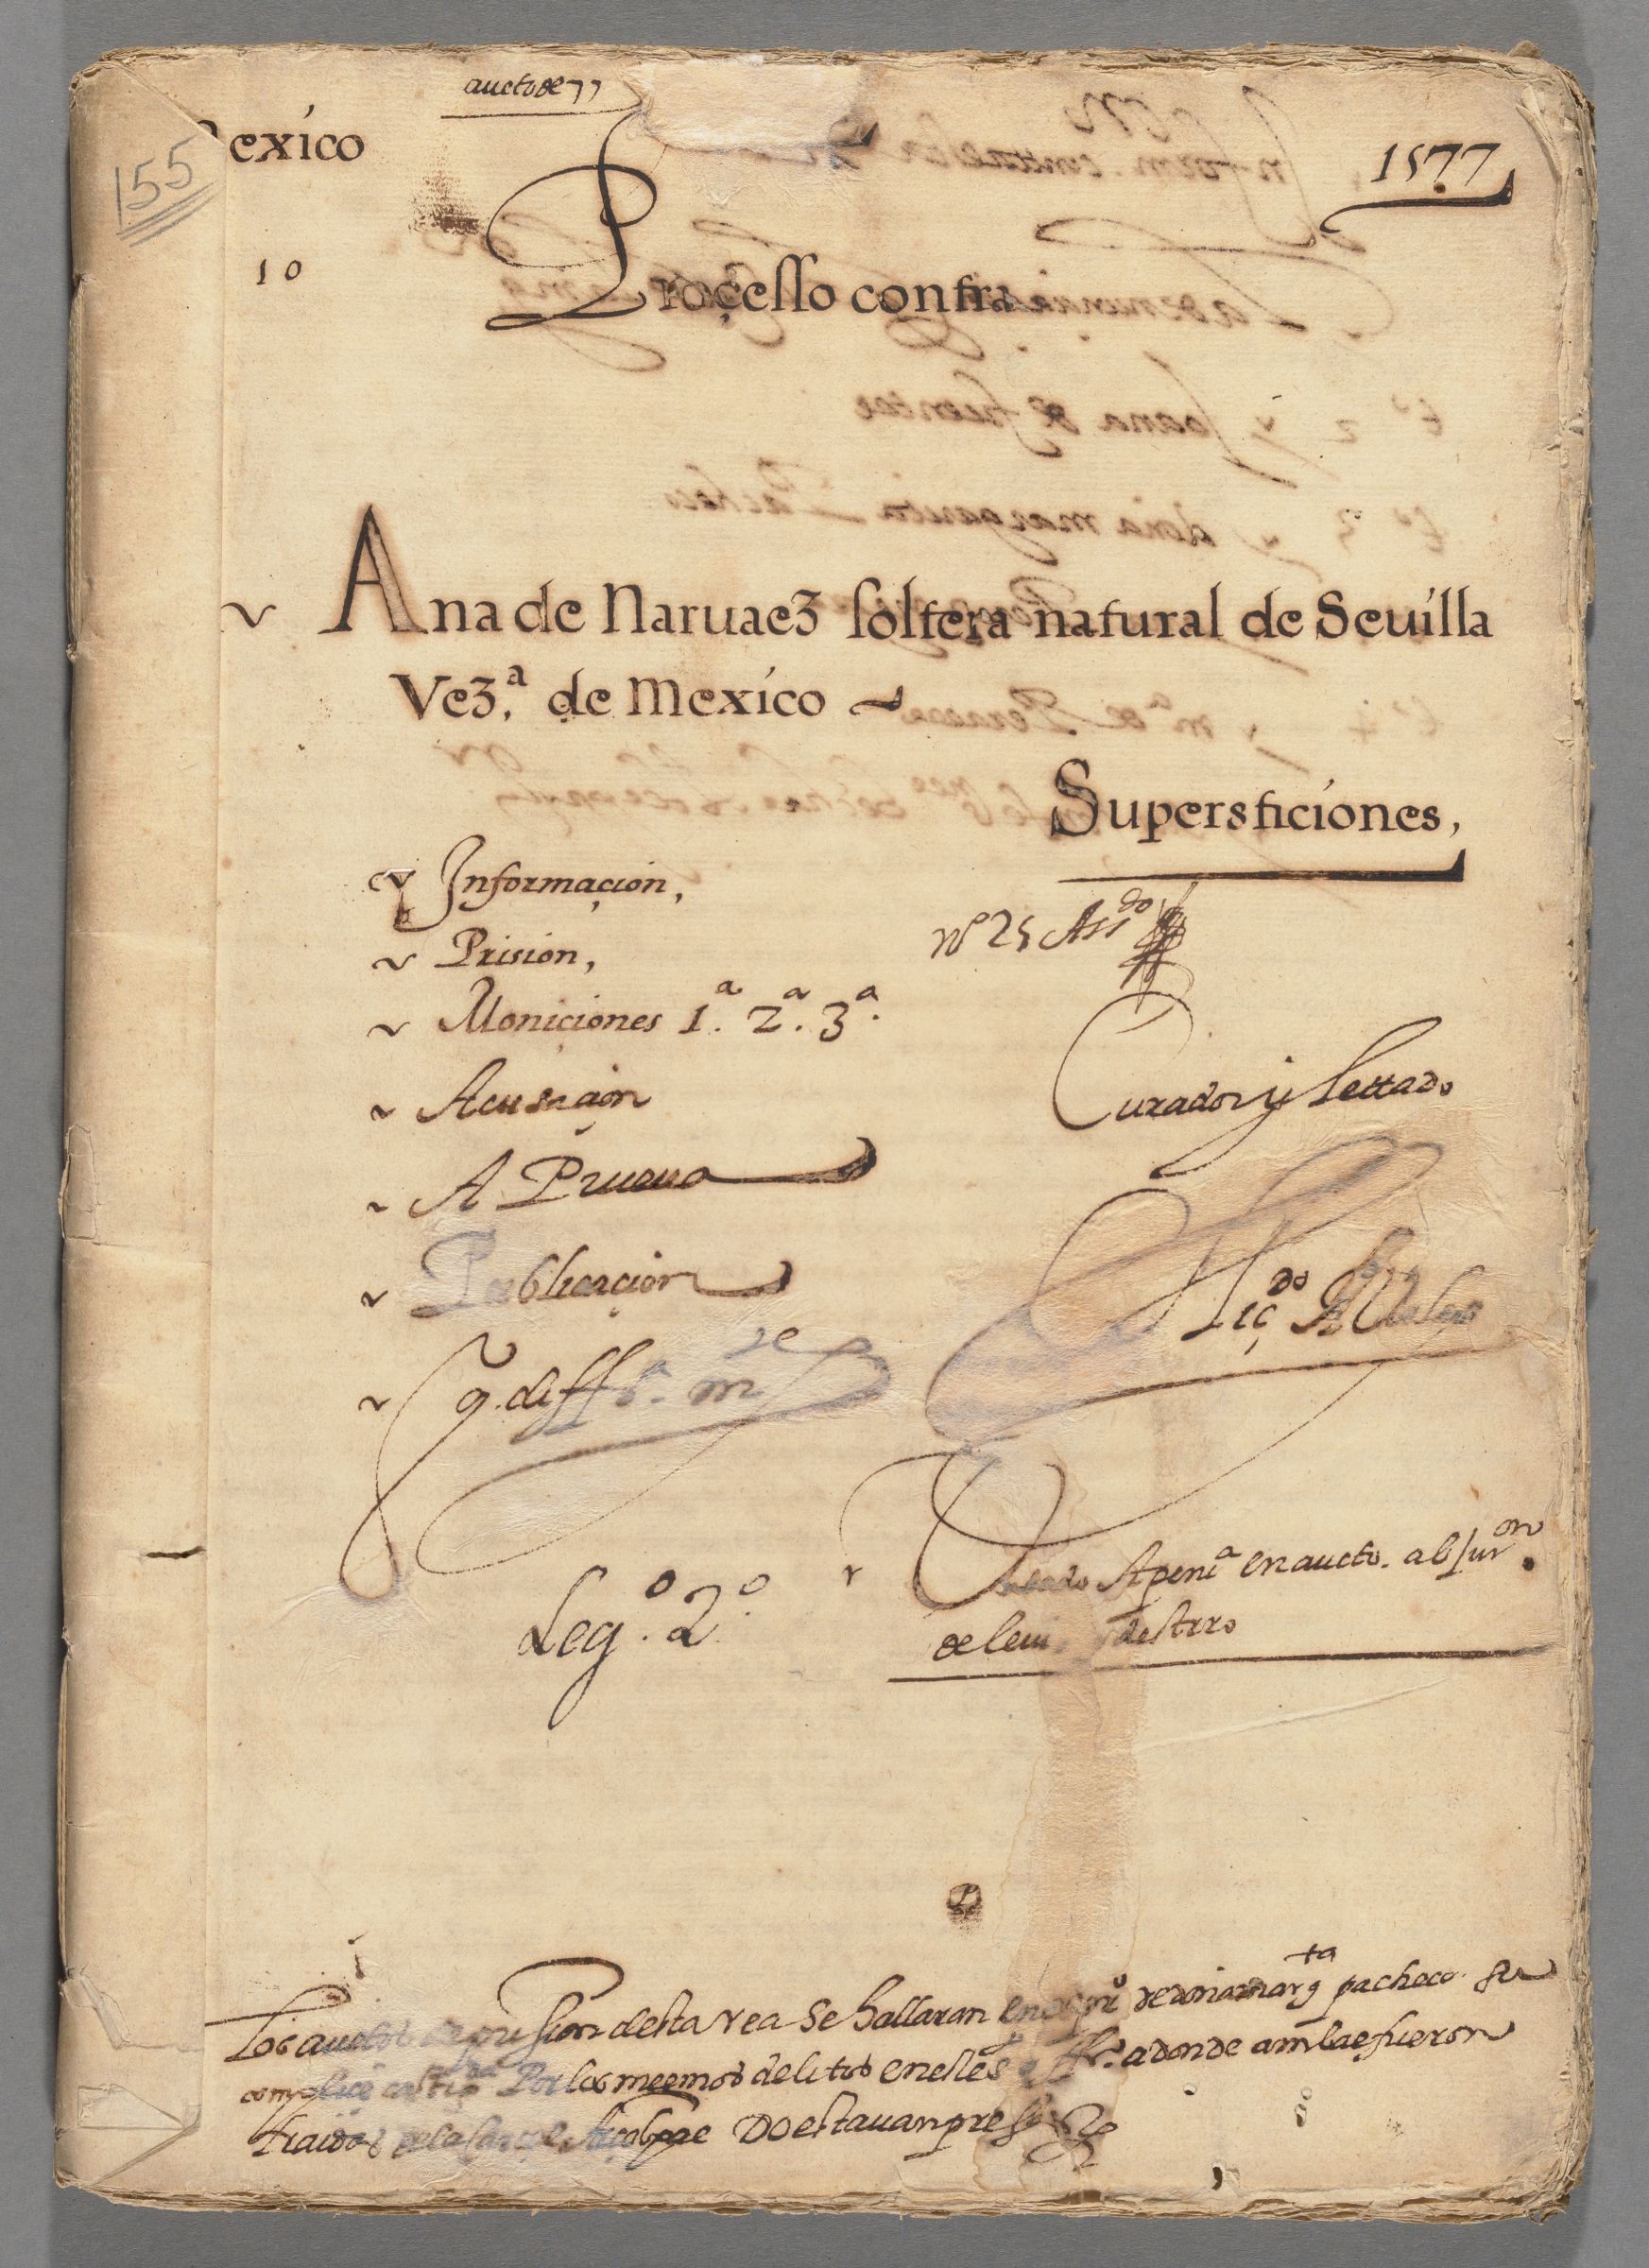 Proceedings against Ana de Narváez,29 July 1577-1578.